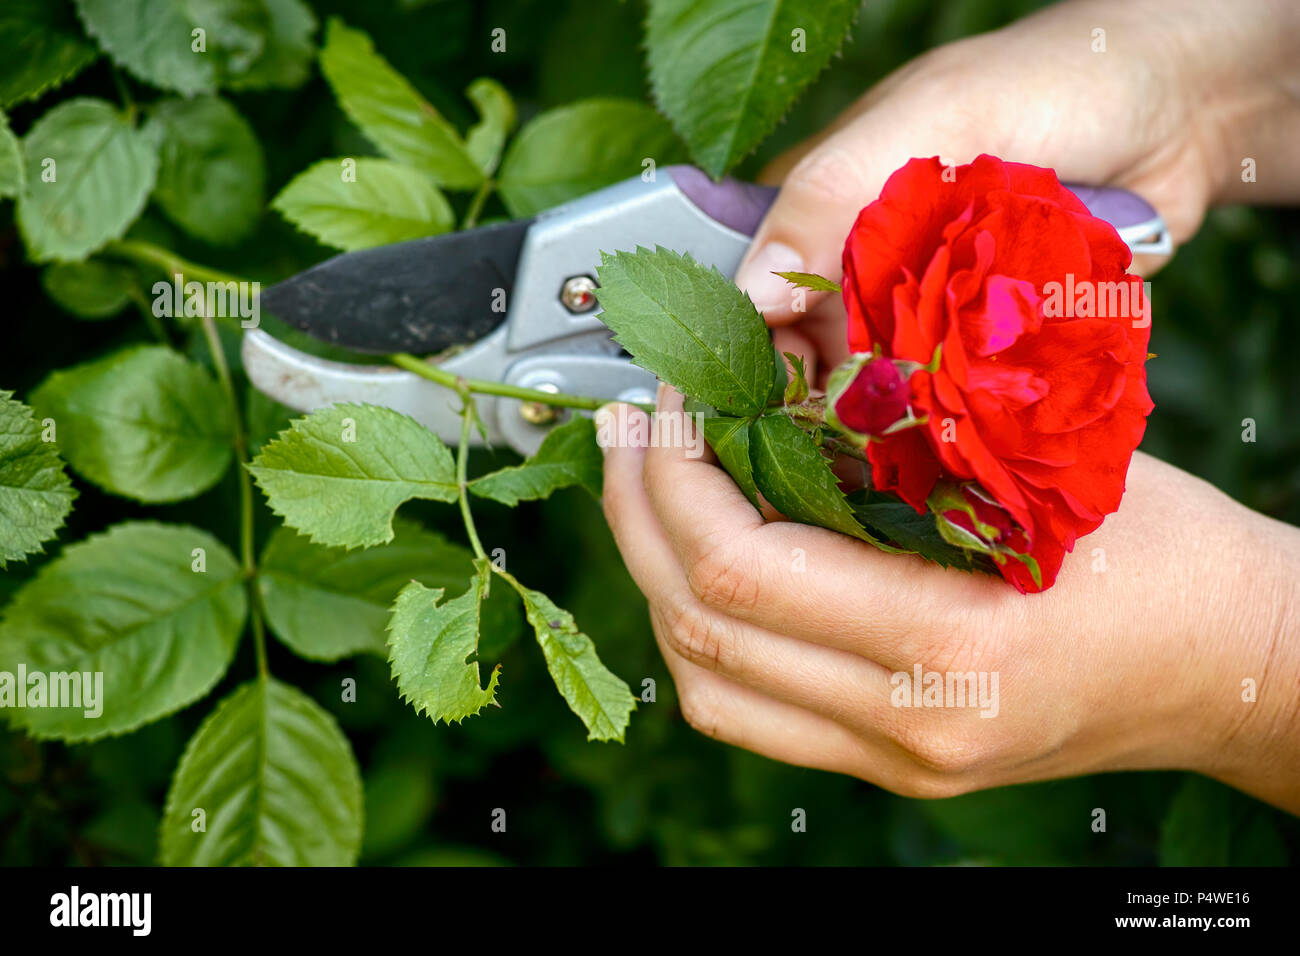 Woman hands with gardening shears cutting red rose of bush. - Stock Image